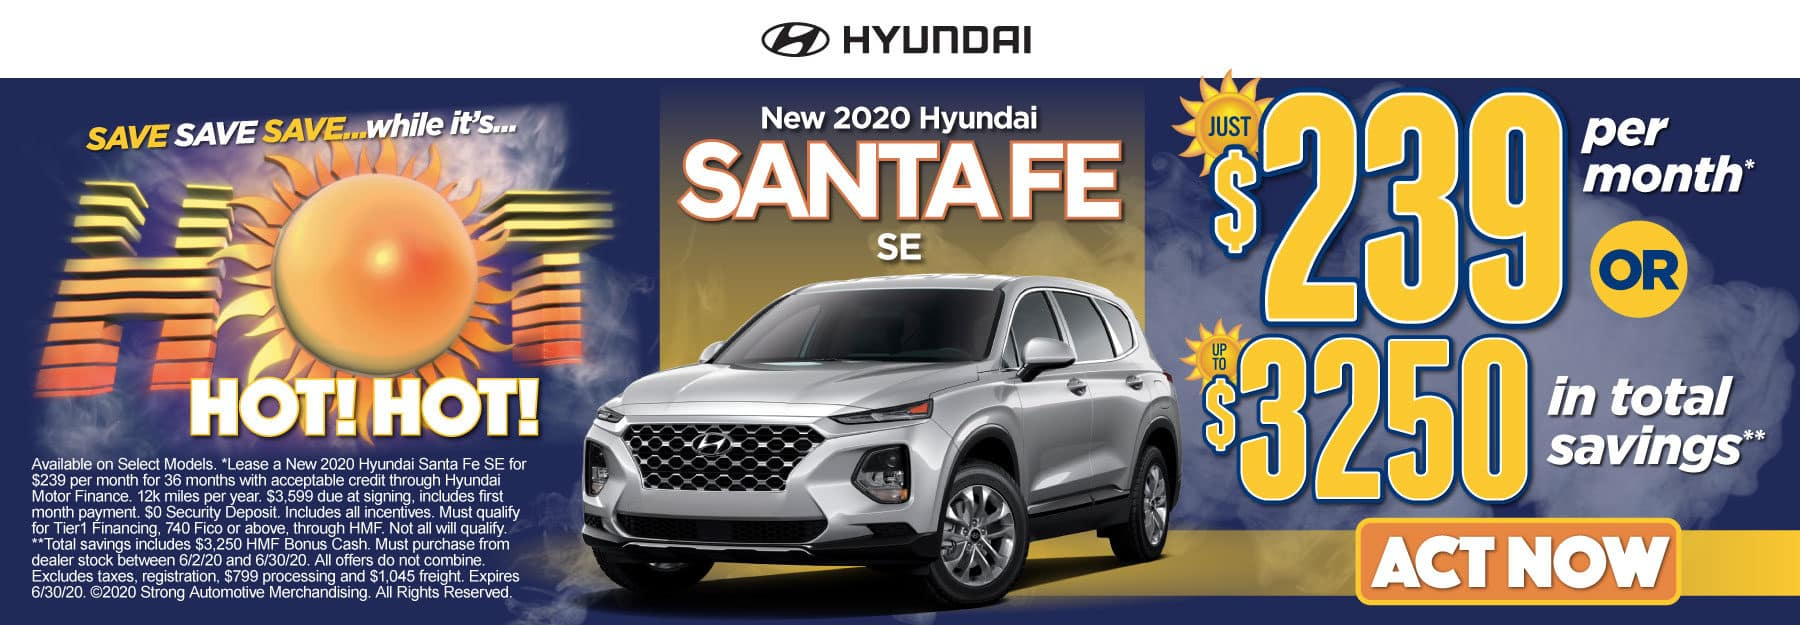 New 2020 Hyundai Santa Fe - Just $239 per month or up to $3250 in total savings - Click to View Inventory